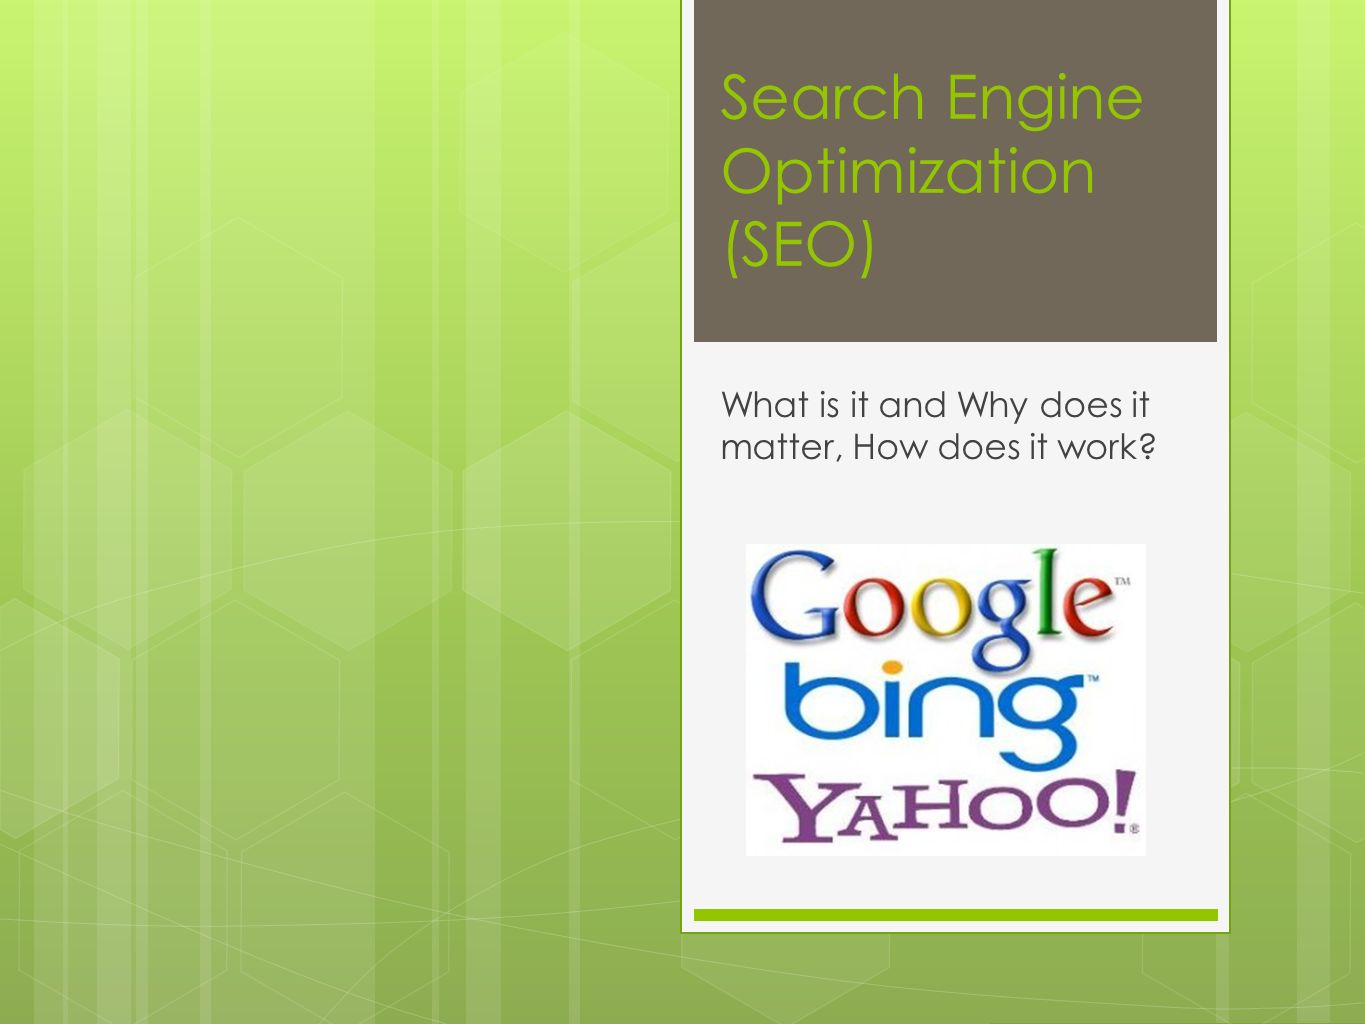 Search Engine Optimization (SEO) What is it and Why does it matter, How does it work?